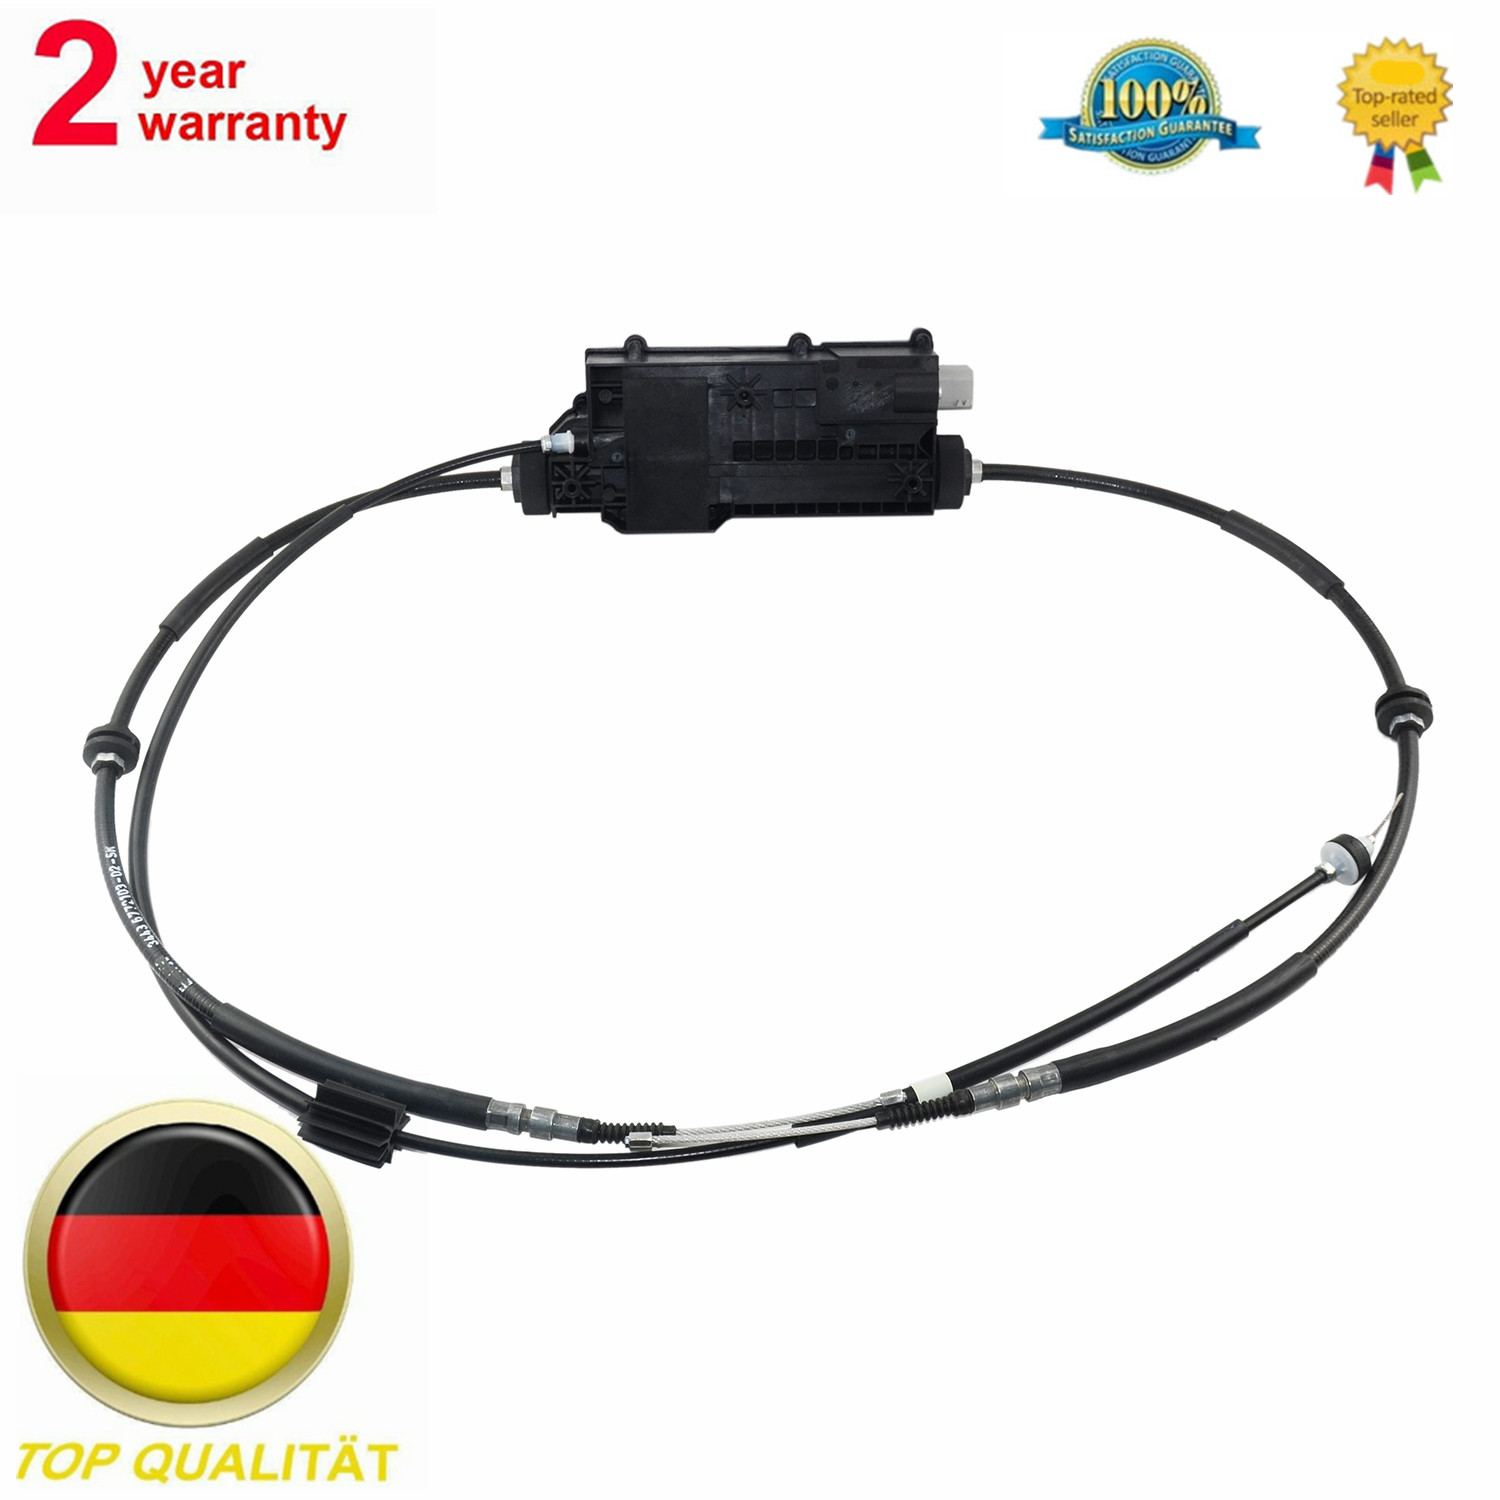 AP03 Brand New Parking Brake Actuator With Control Unit For BMW X5 X6 E70 E71 E72 34436850289 ,34 43 6 <font><b>850</b></font> 289 image